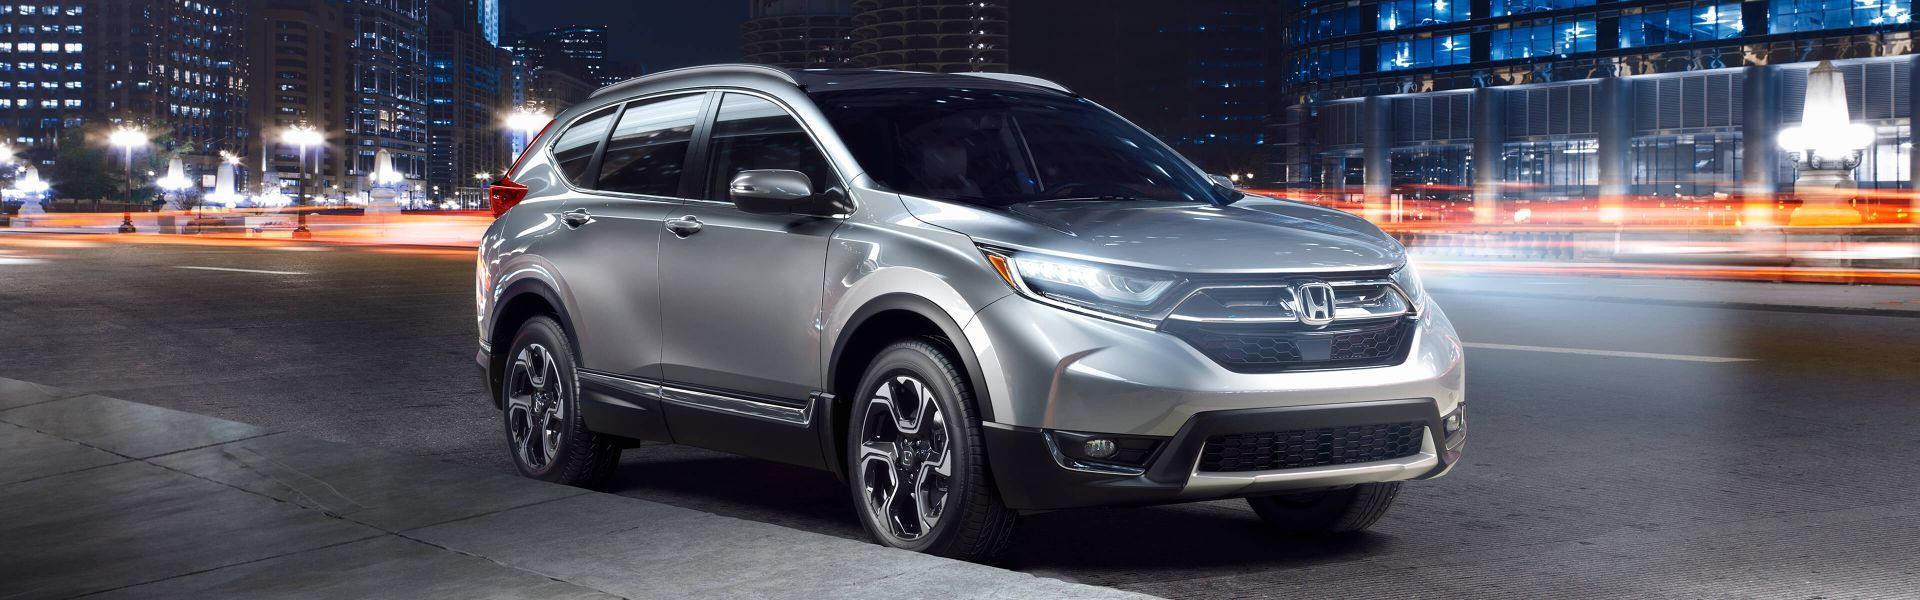 Why You Should Consider Purchasing an SUV